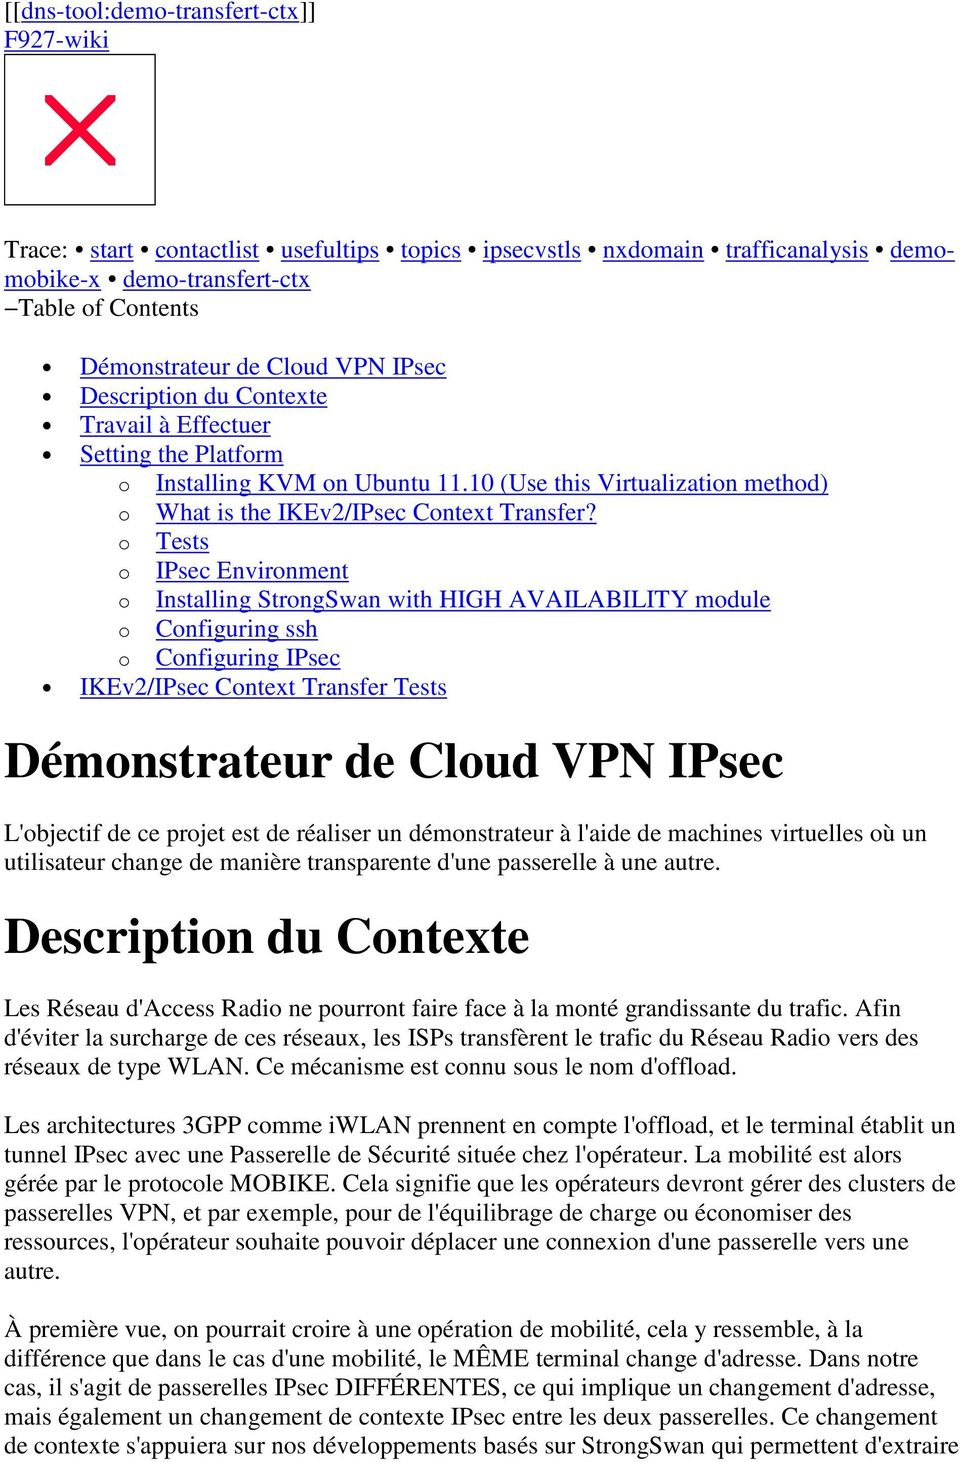 o Tests o IPsec Environment o Installing StrongSwan with HIGH AVAILABILITY module o Configuring ssh o Configuring IPsec IKEv2/IPsec Context Transfer Tests Démonstrateur de Cloud VPN IPsec L'objectif